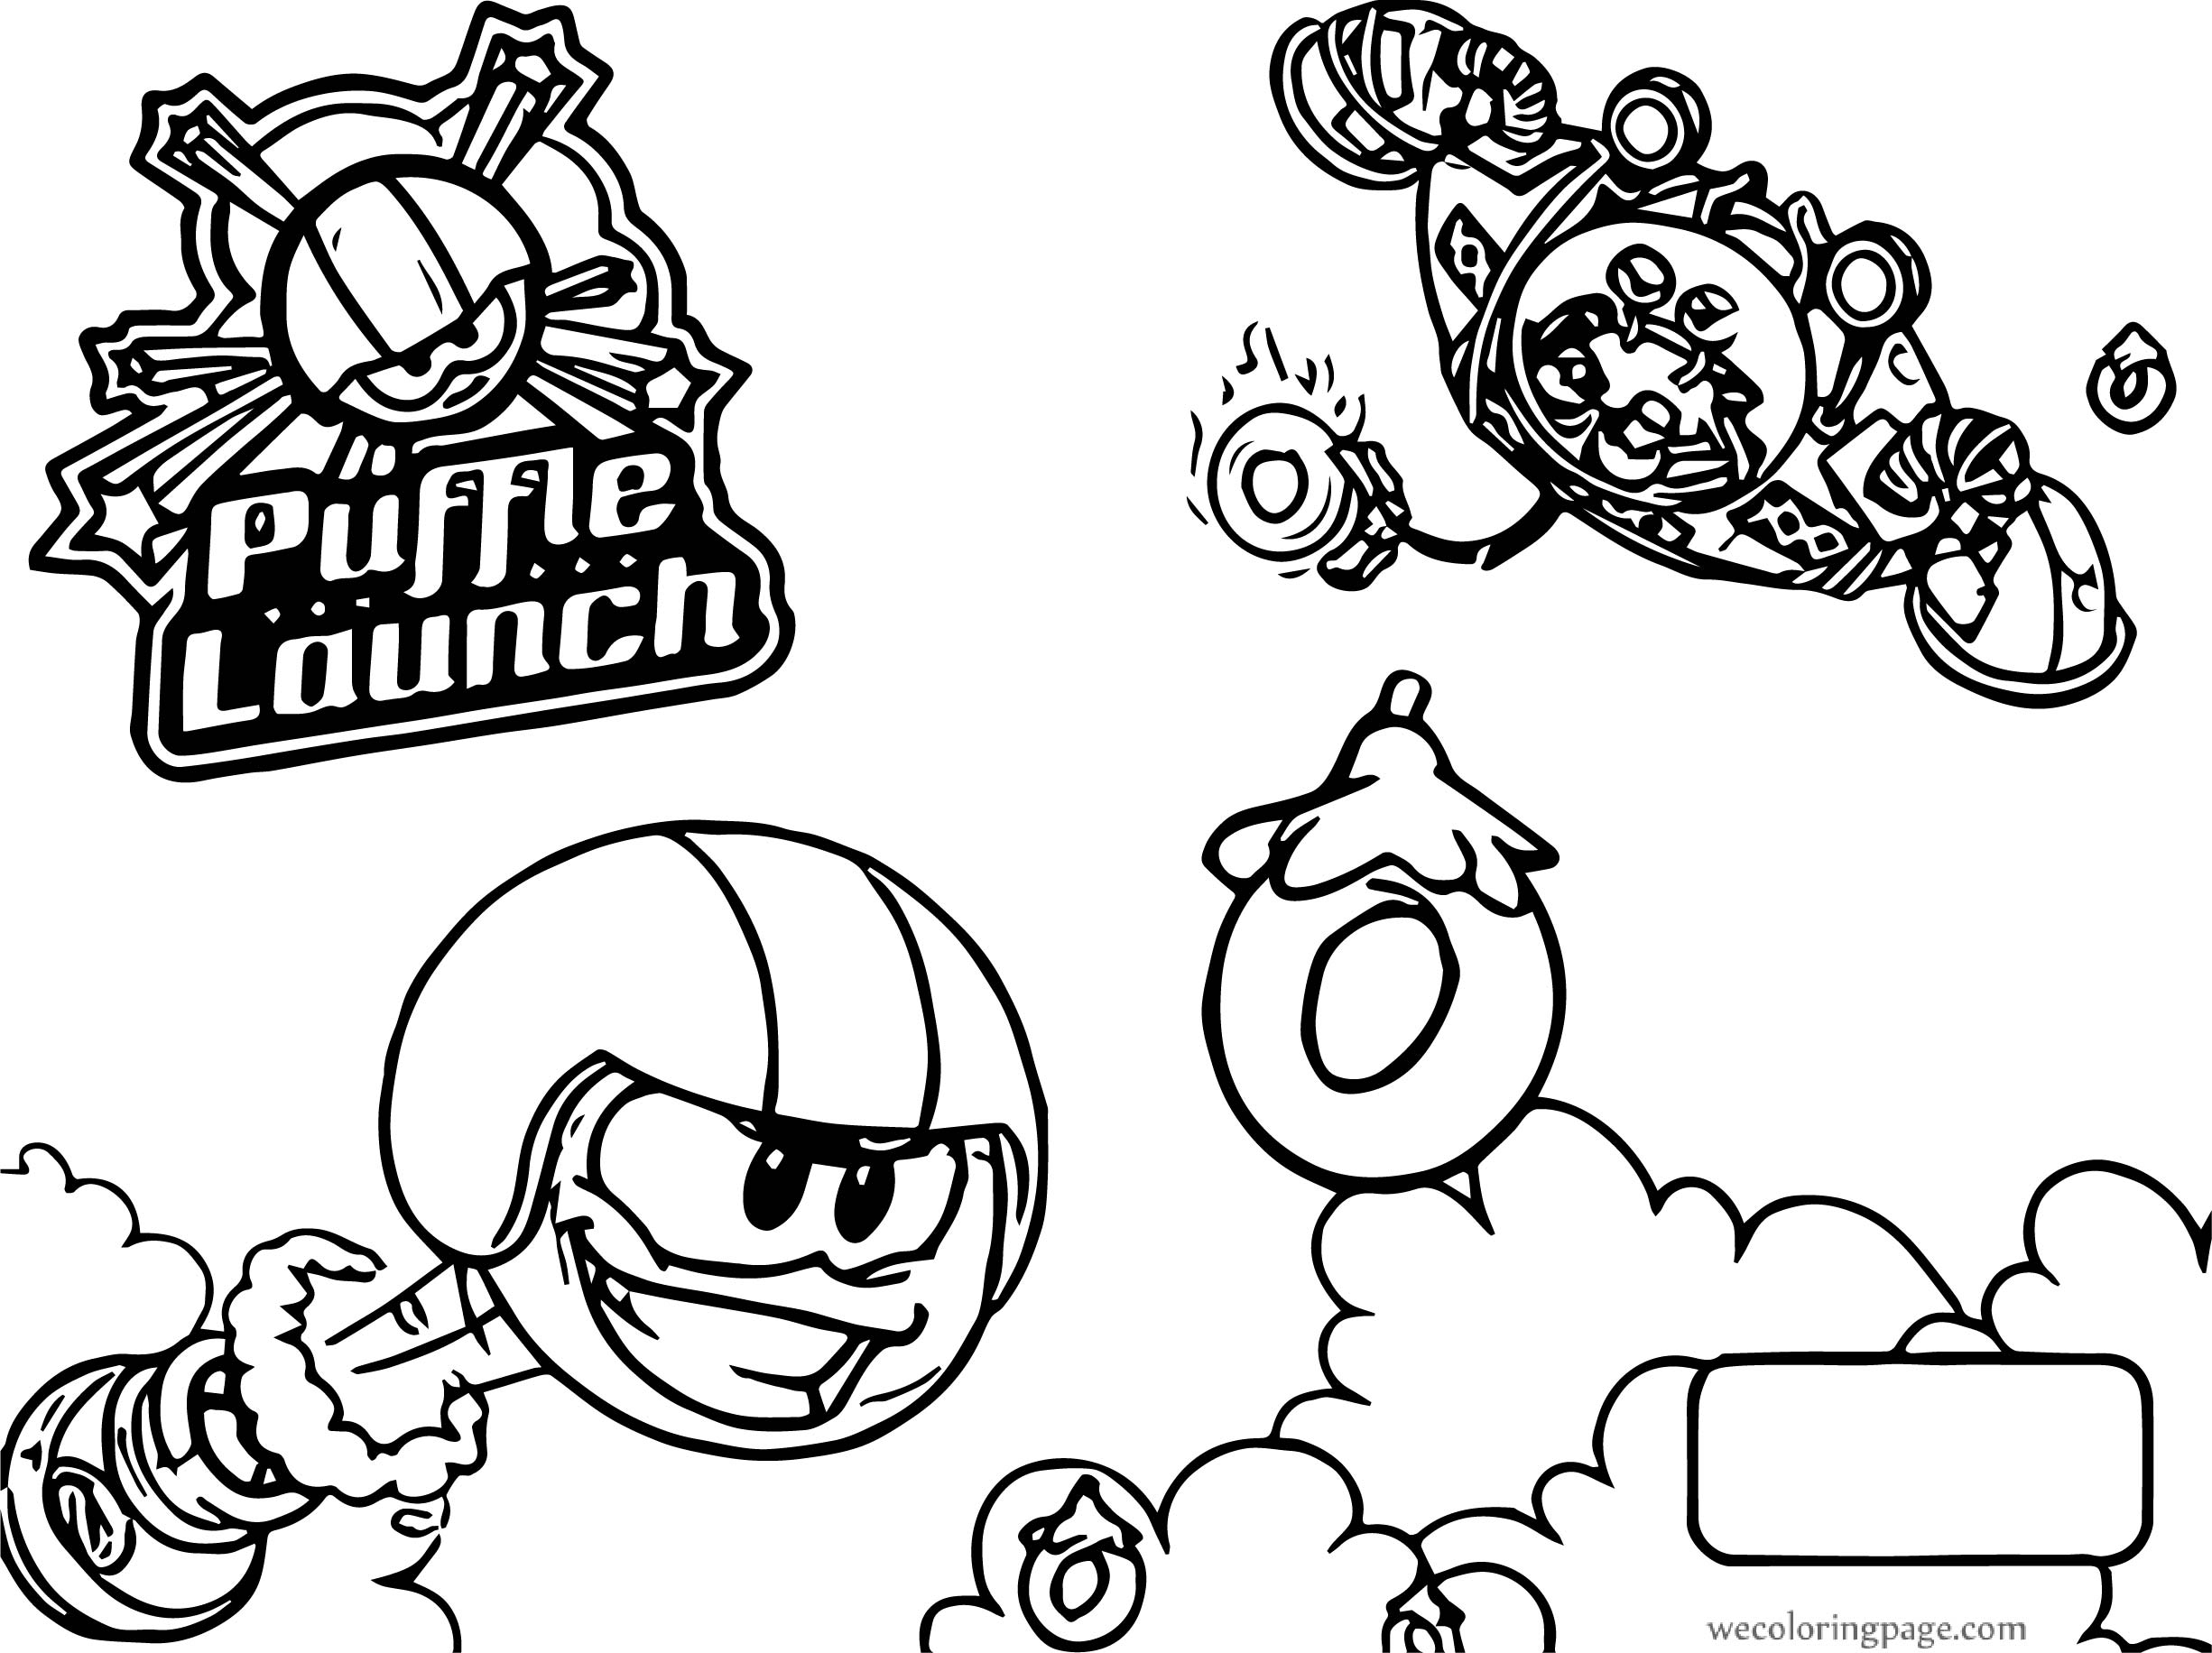 Club Penguin Puffle Launch Coloring Page